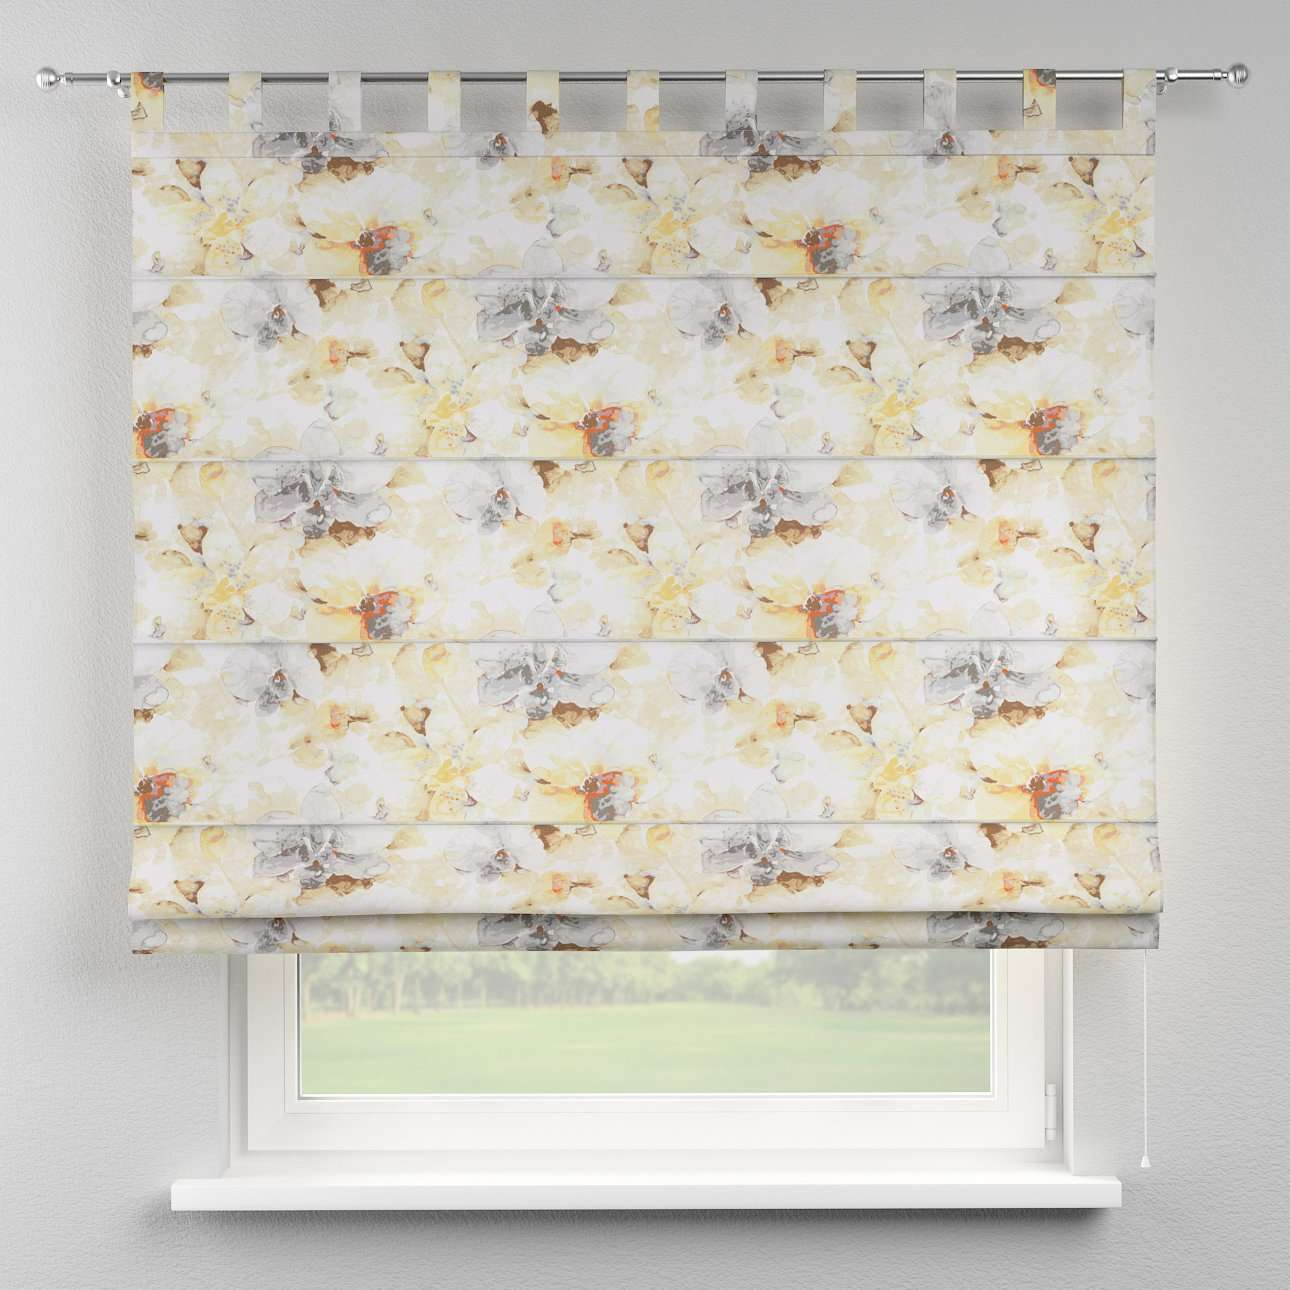 Verona tab top roman blind 80 x 170 cm (31.5 x 67 inch) in collection Acapulco, fabric: 141-33